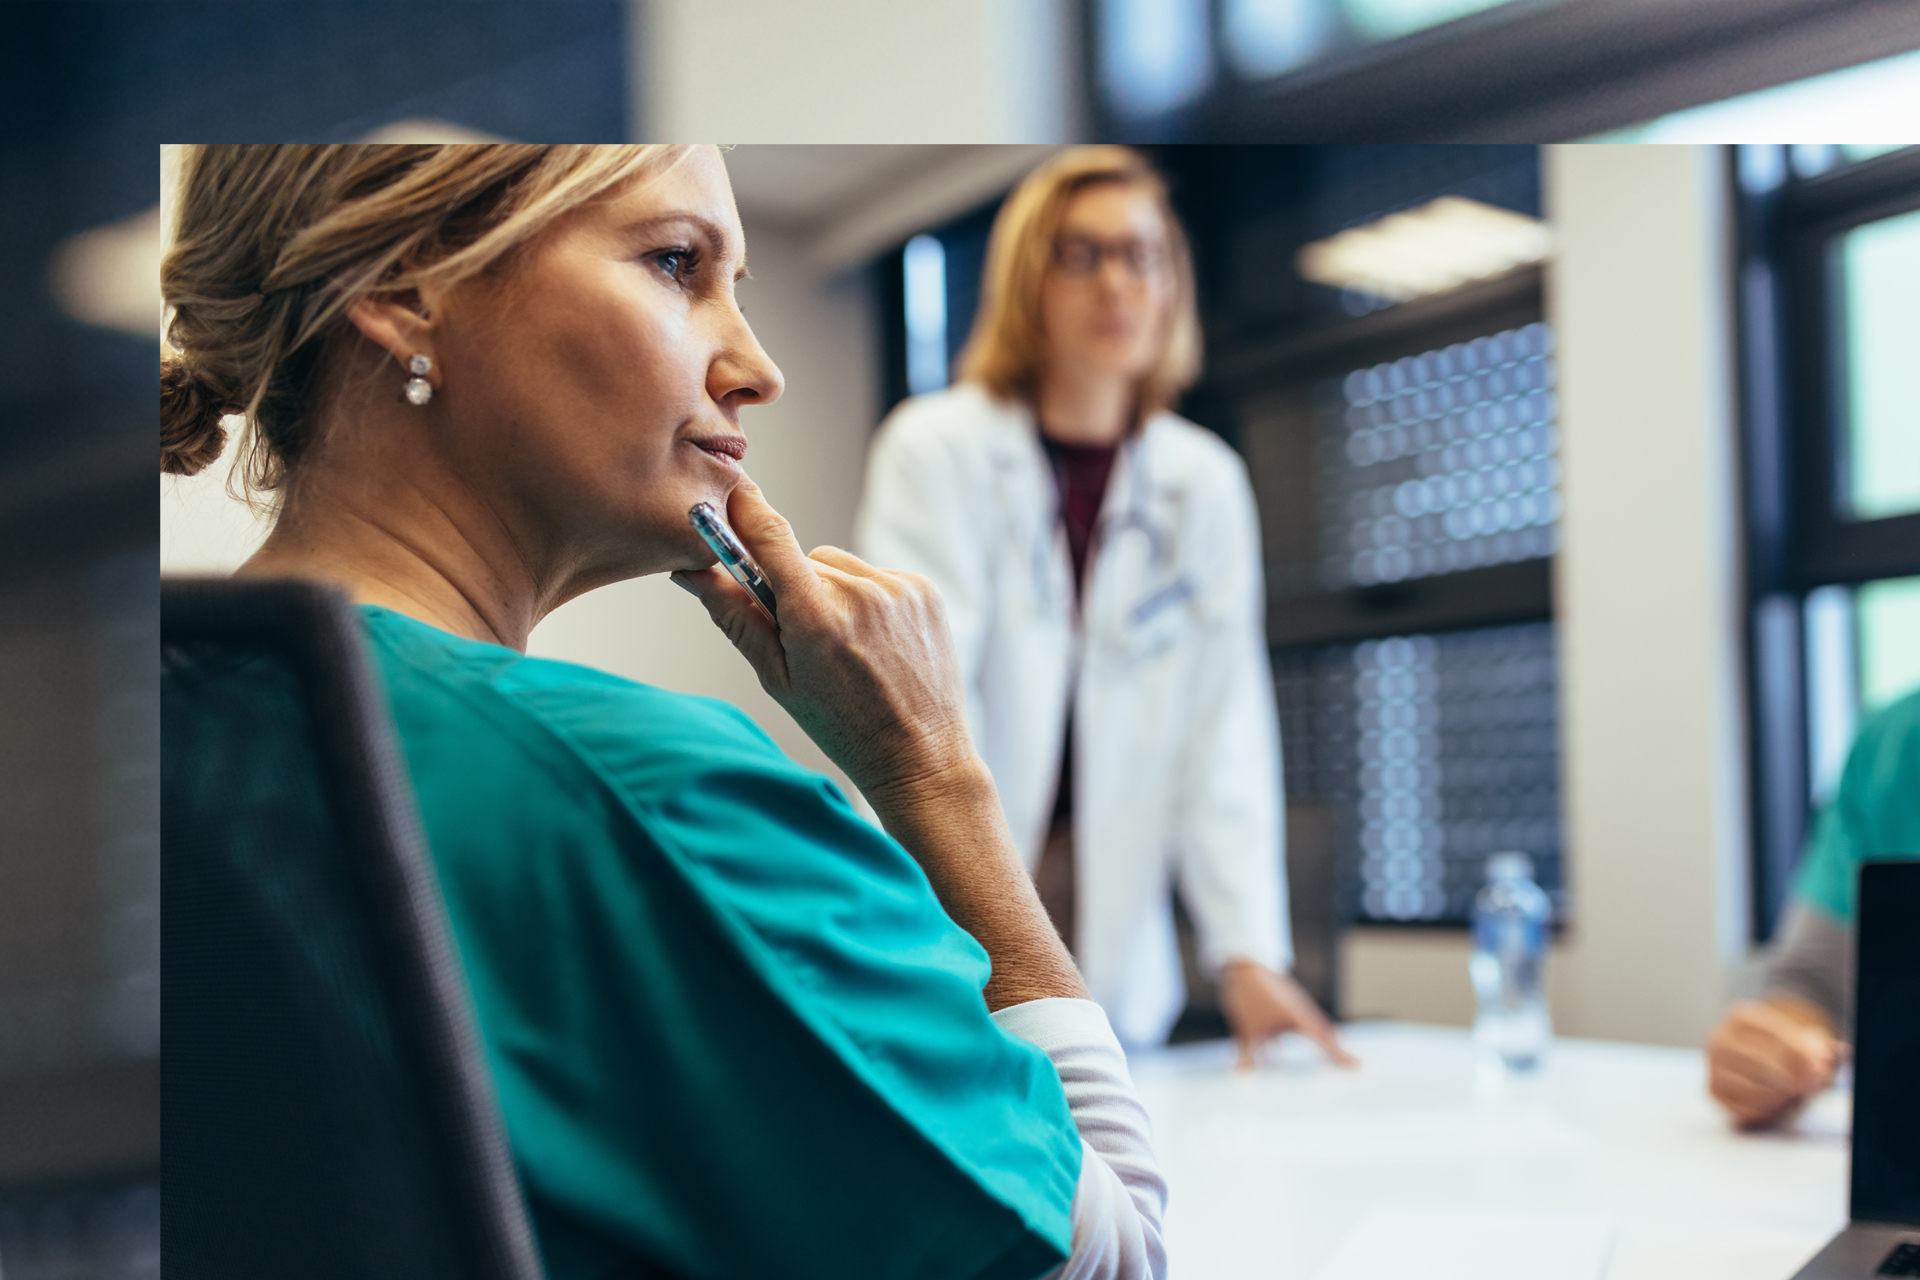 Focus on nurse sitting at meeting room table with doctor standing, leaning on table in background